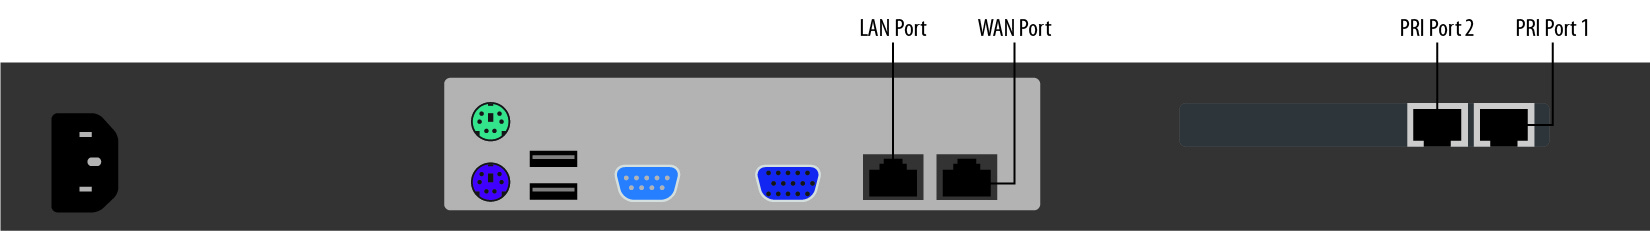 cudatel_port_diagrams-470.jpg